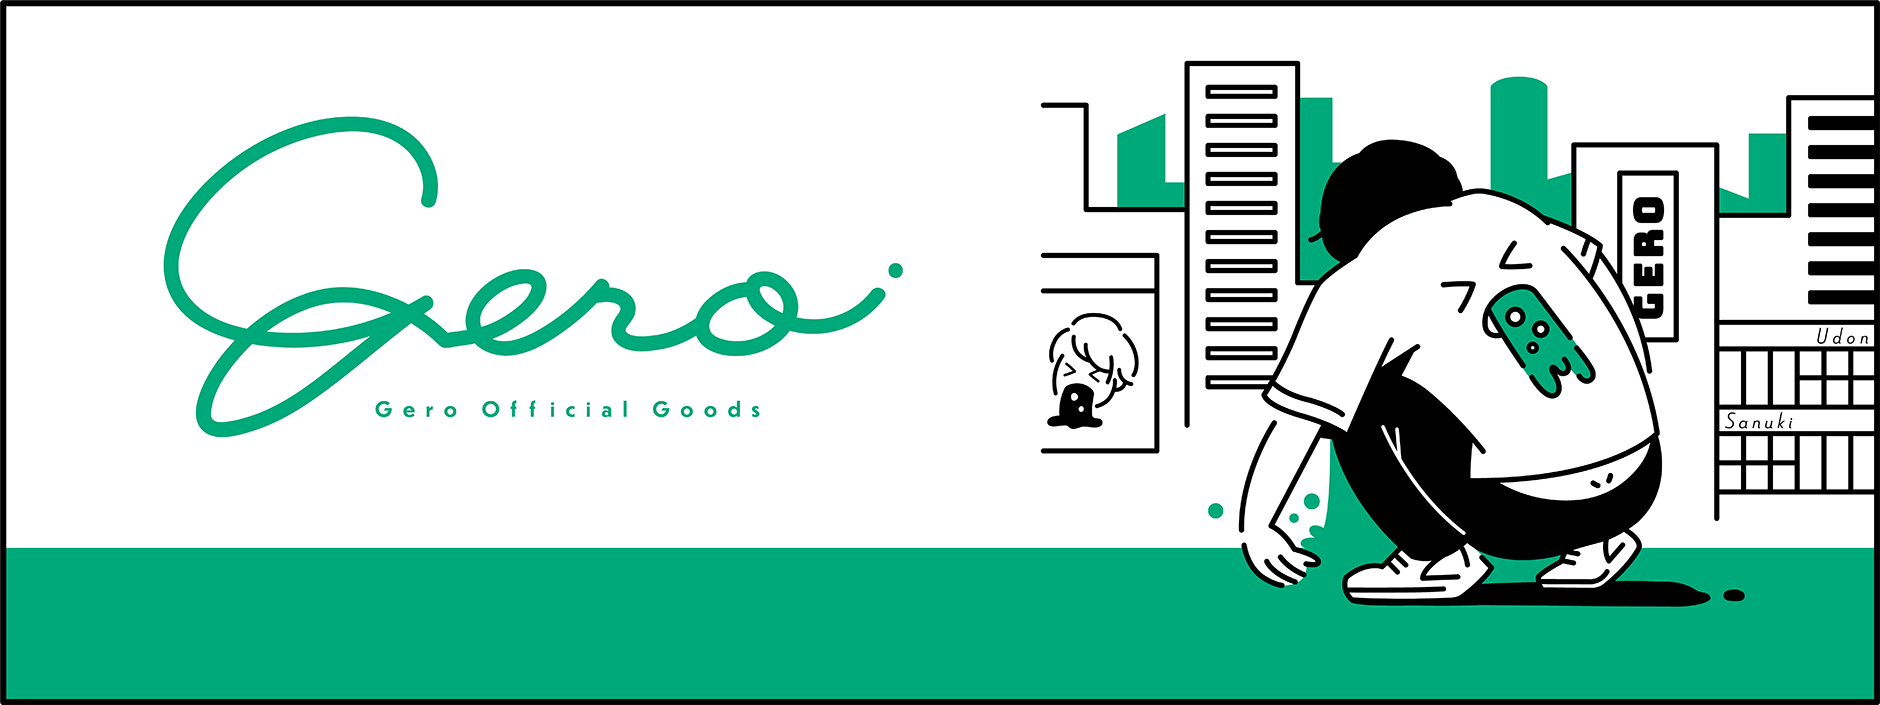 Gero official goods 2020